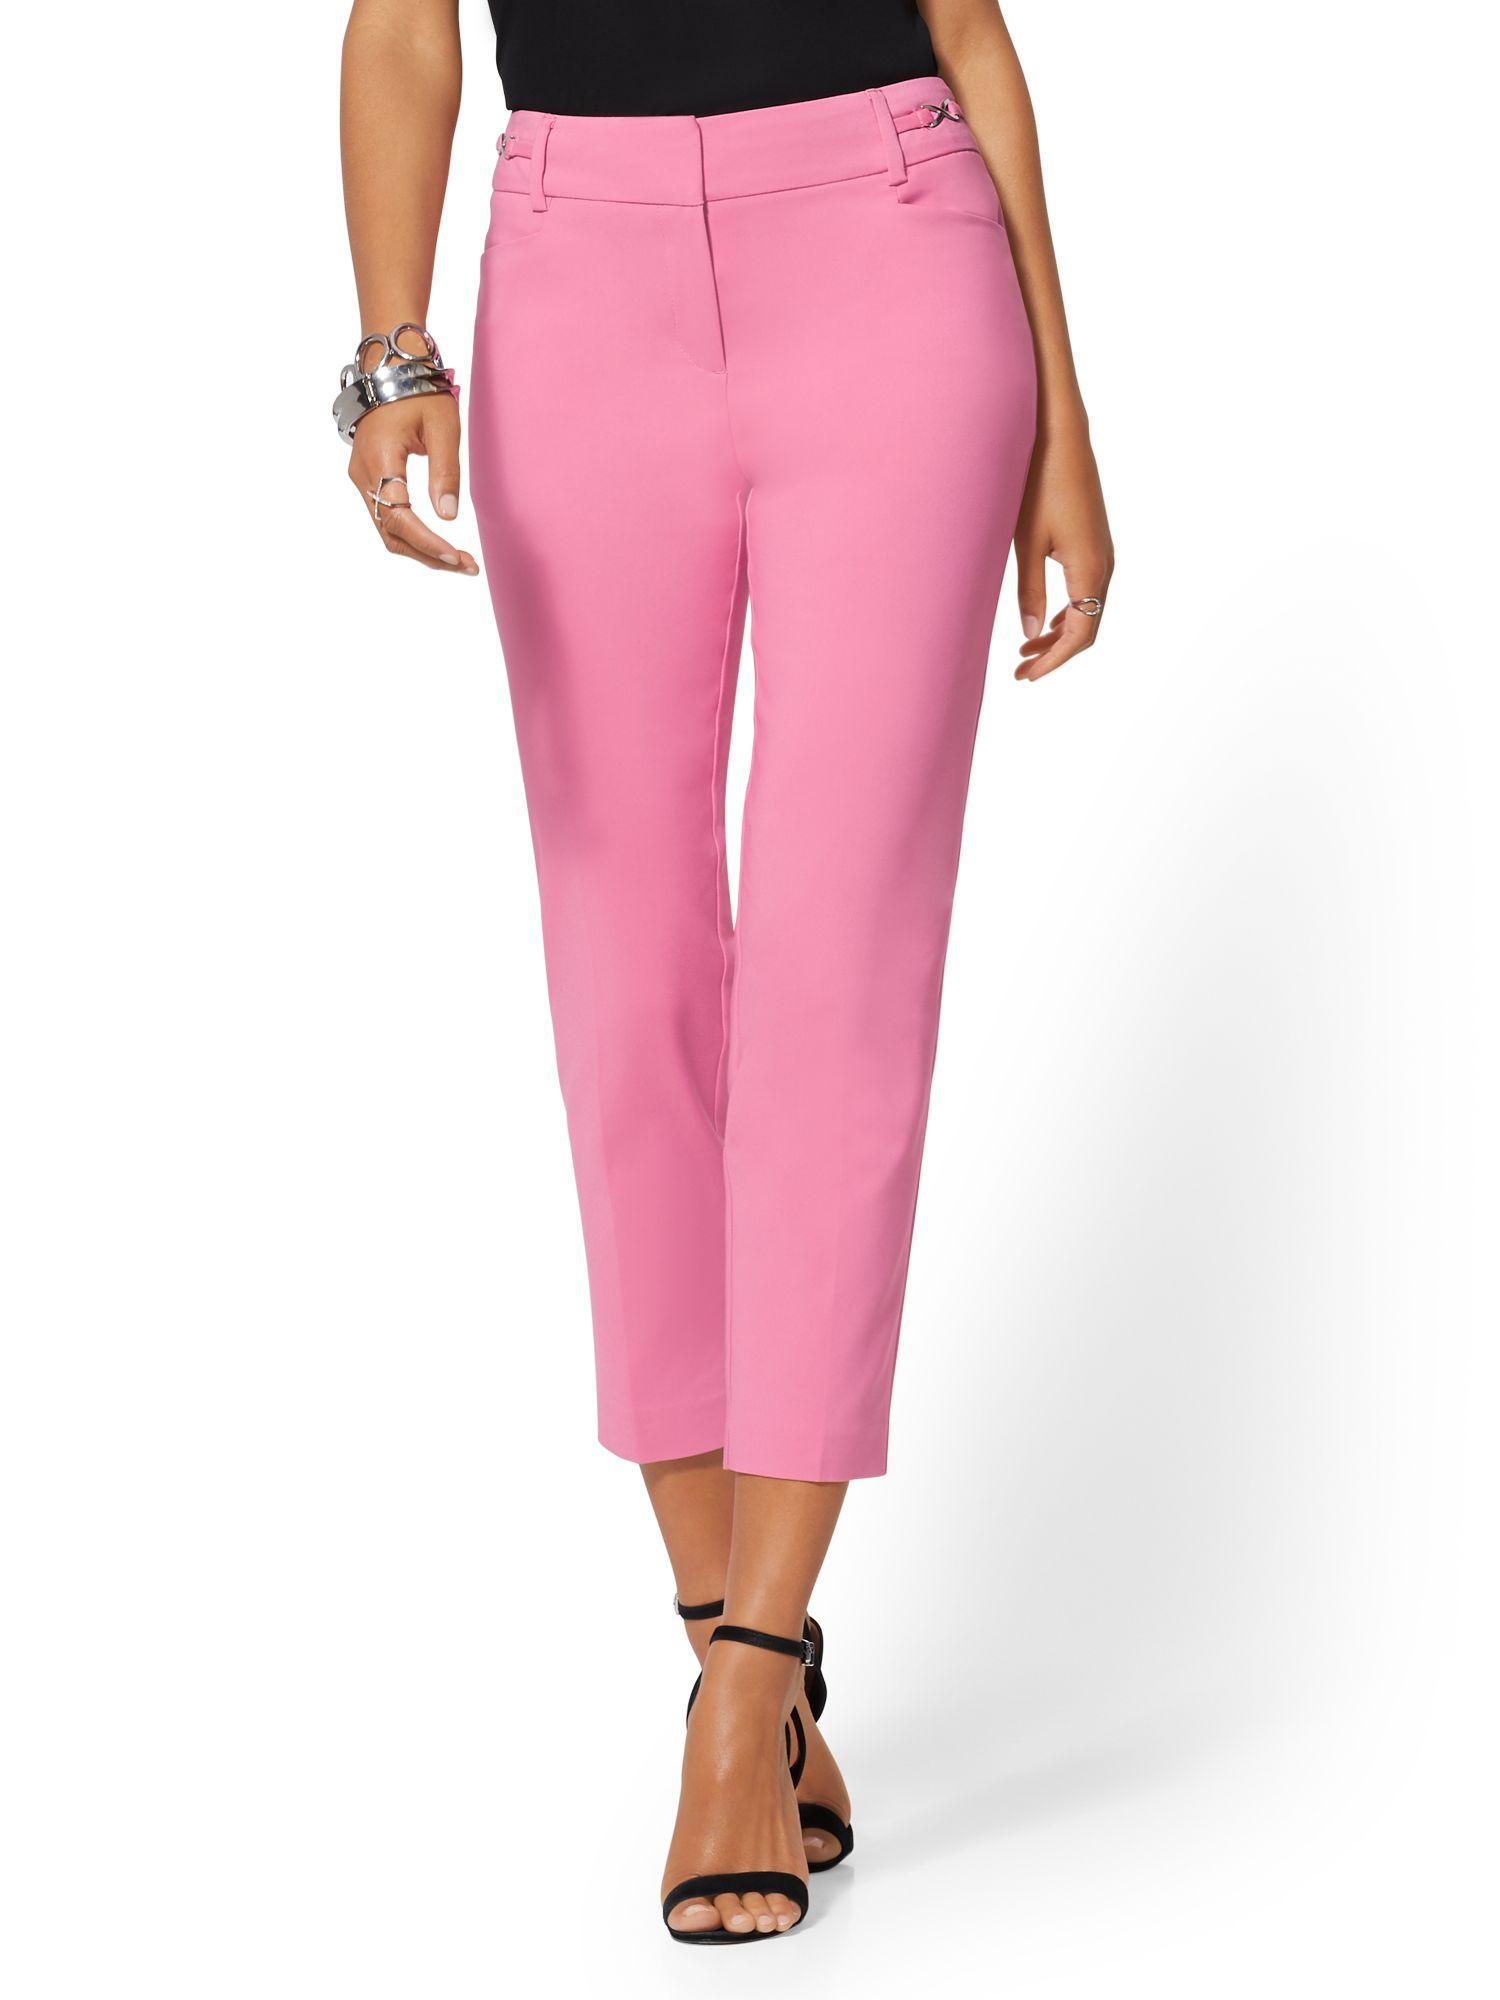 fcbdb9fce792ac New York & Company Hardware-accent Ankle Pant - Modern Fit - All ...